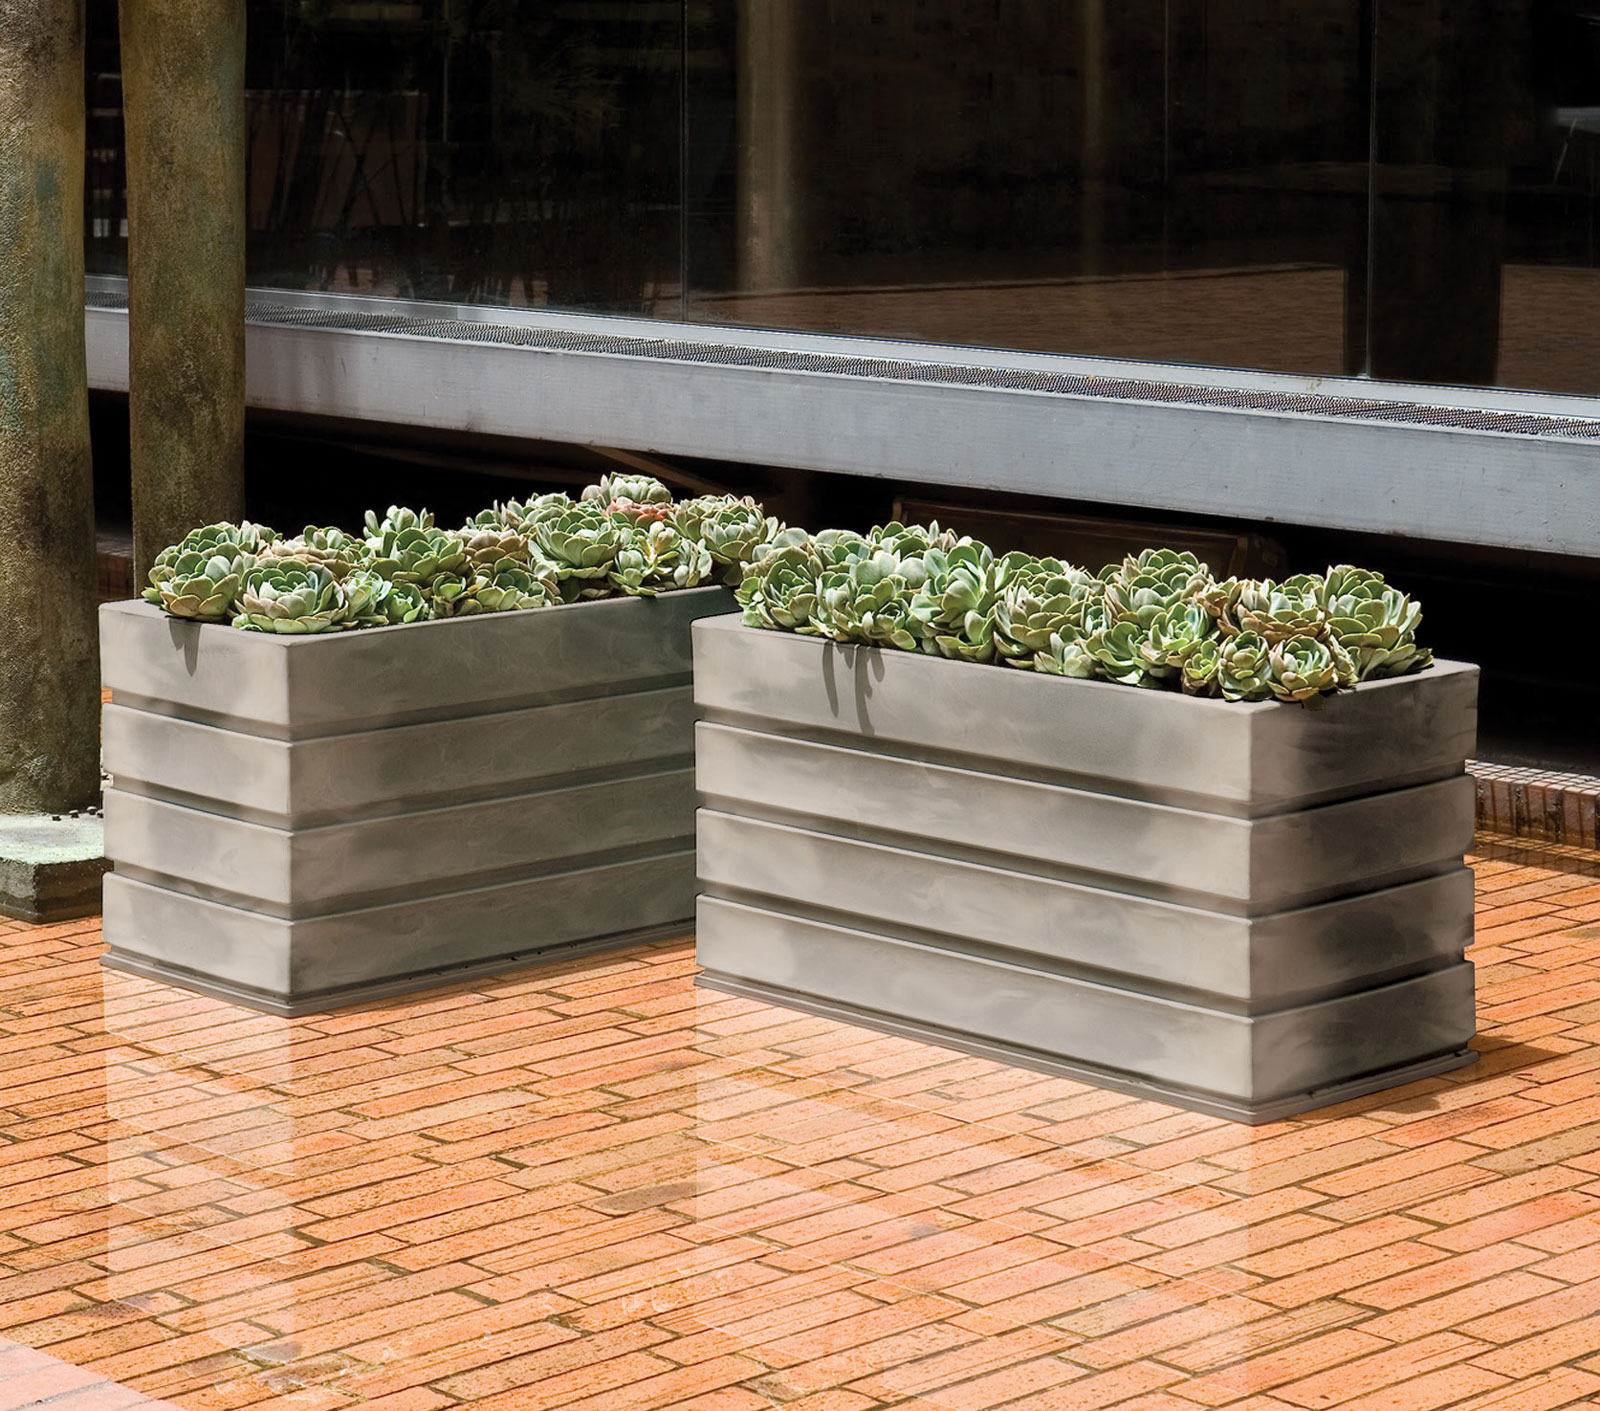 barriers functional serving marek tapered public these also to planters fiberglass decorative while touch large spaces operate commercial outdoor as a purpose site rectangular unlimited planter effective